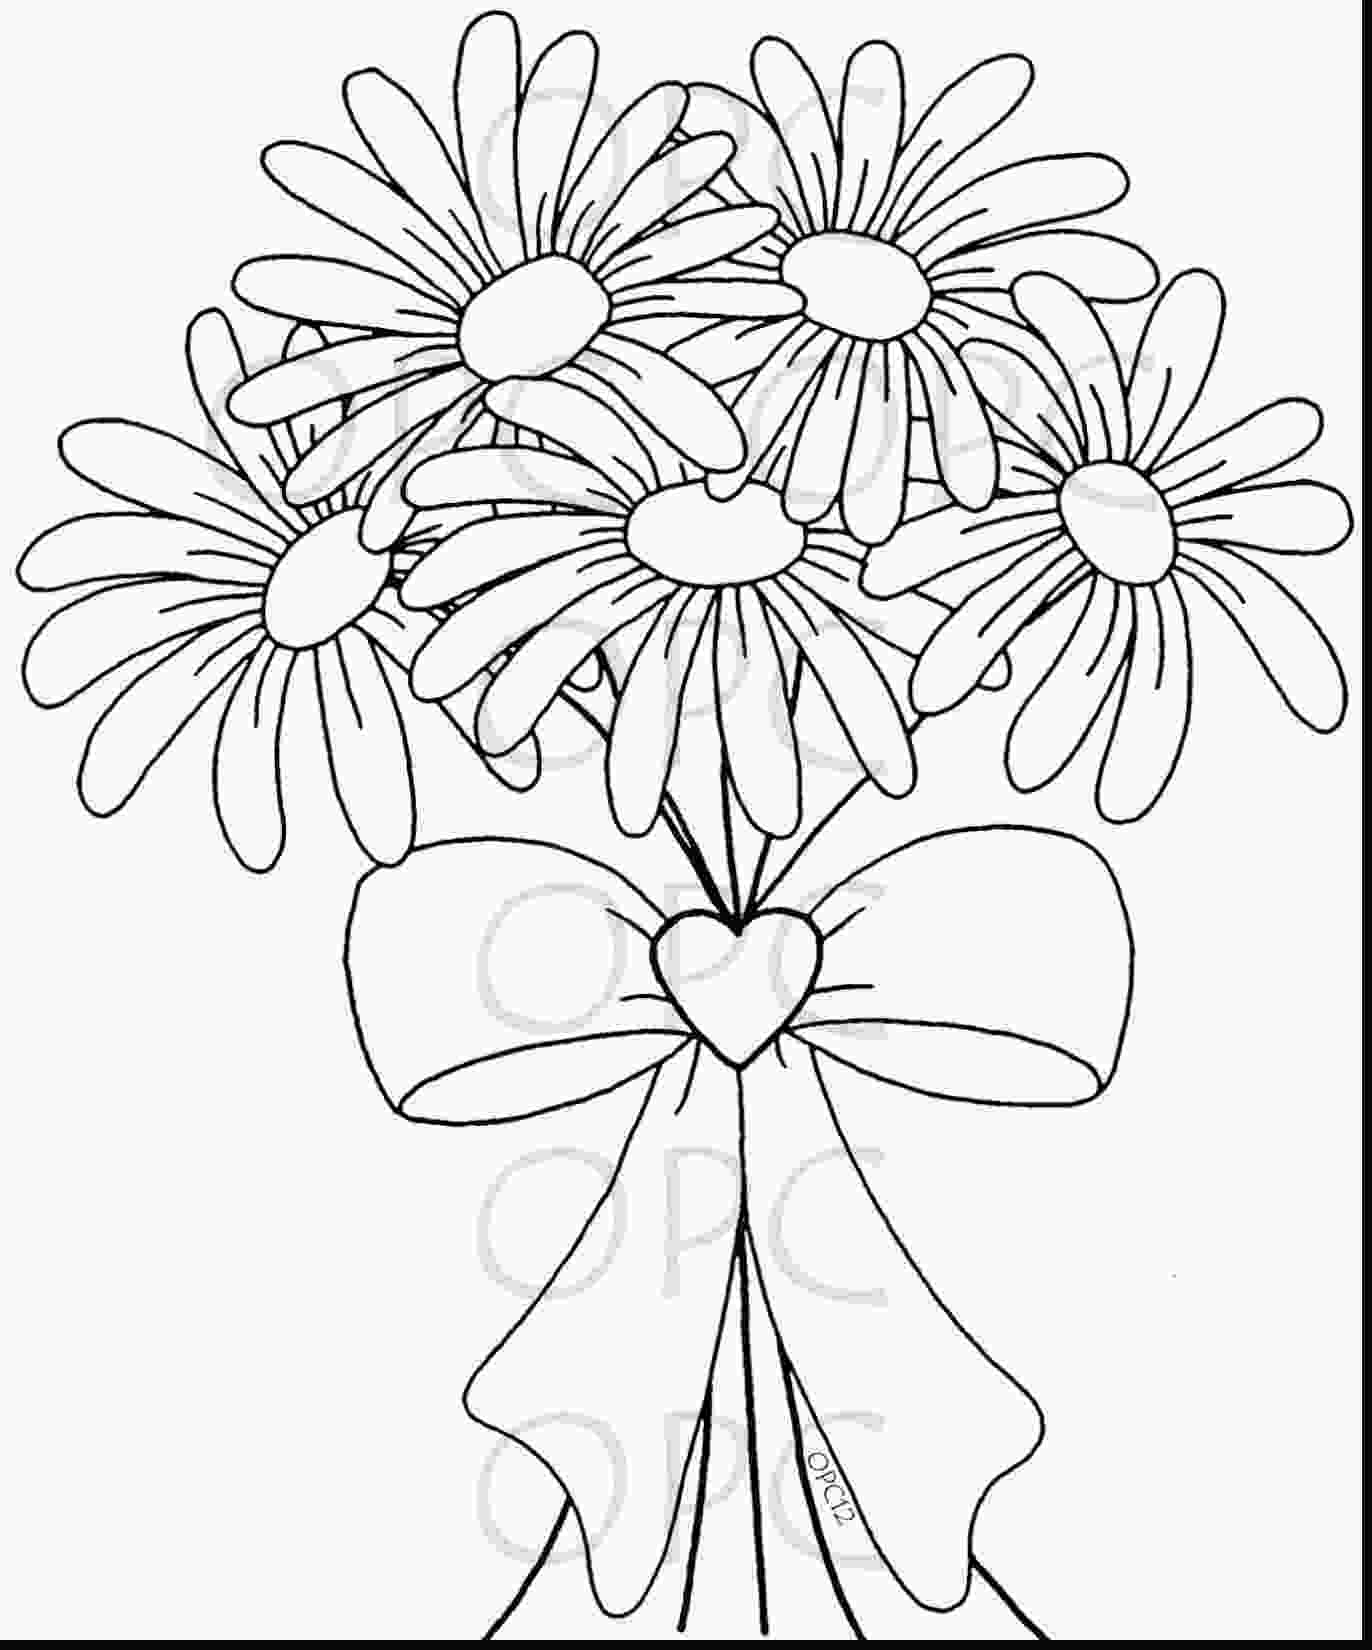 daisy coloring pages daisy flower coloring pages at getcoloringscom free